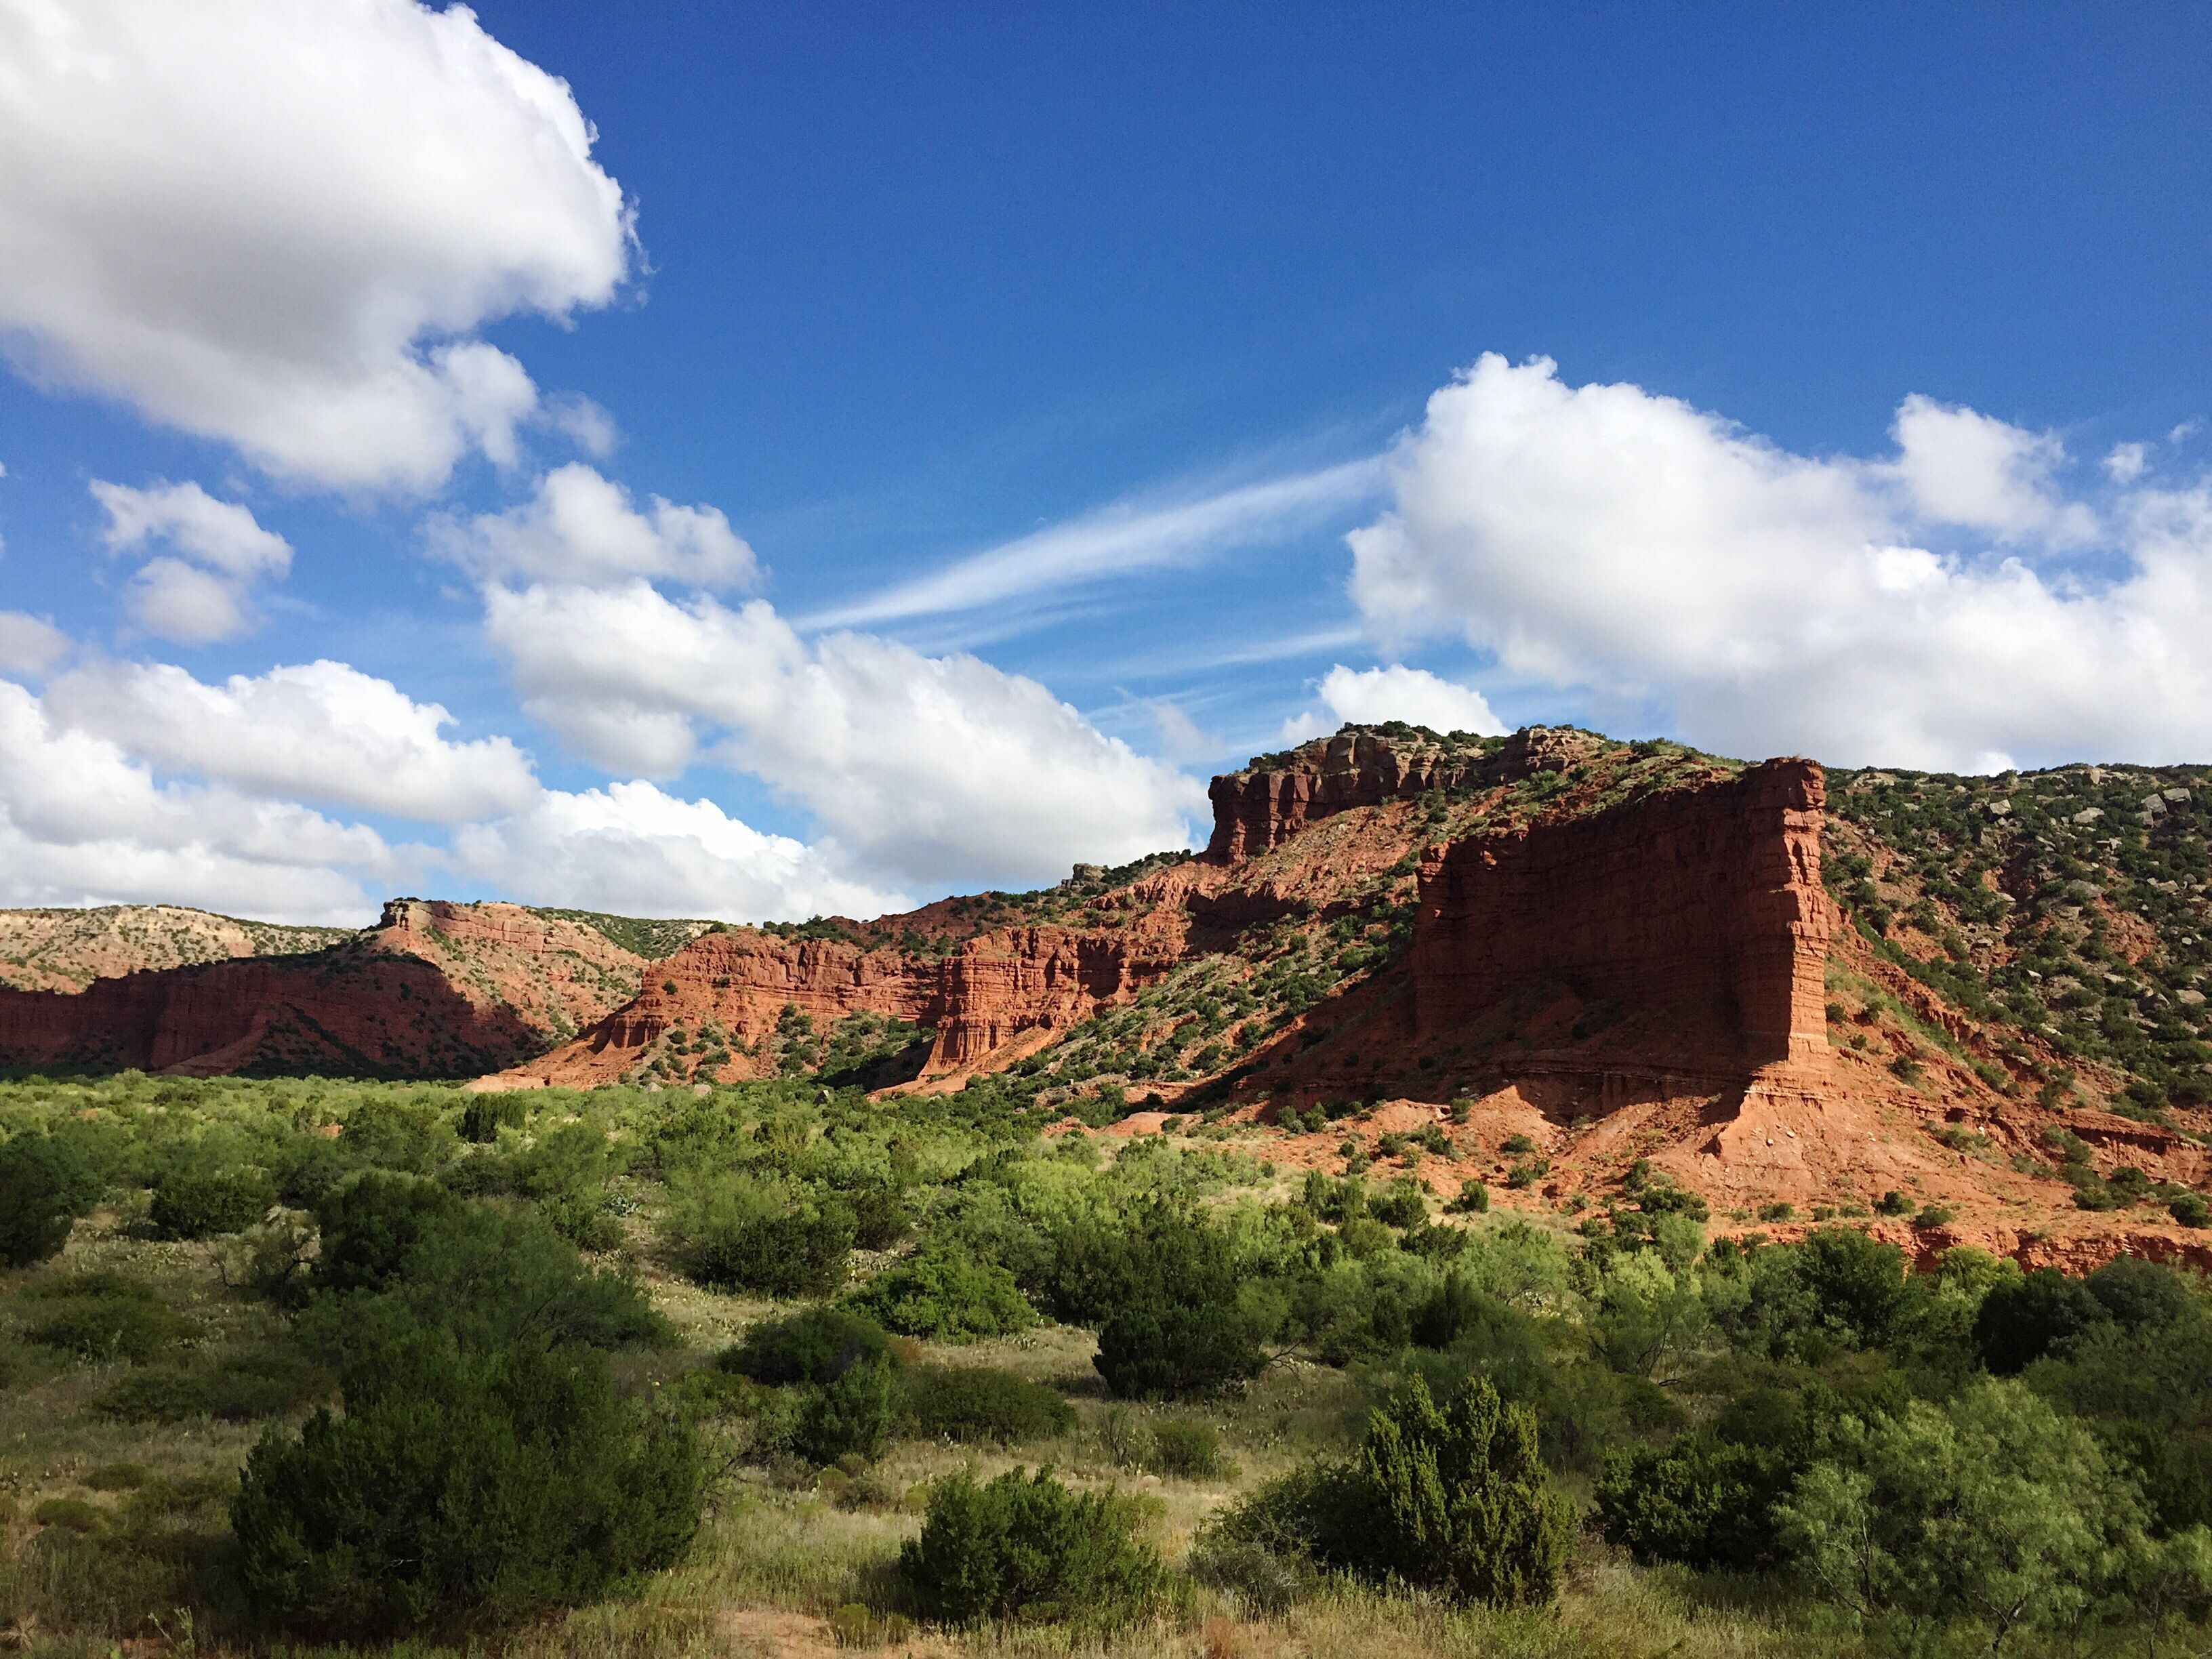 Caprock Canyons State Park: The Complete Guide